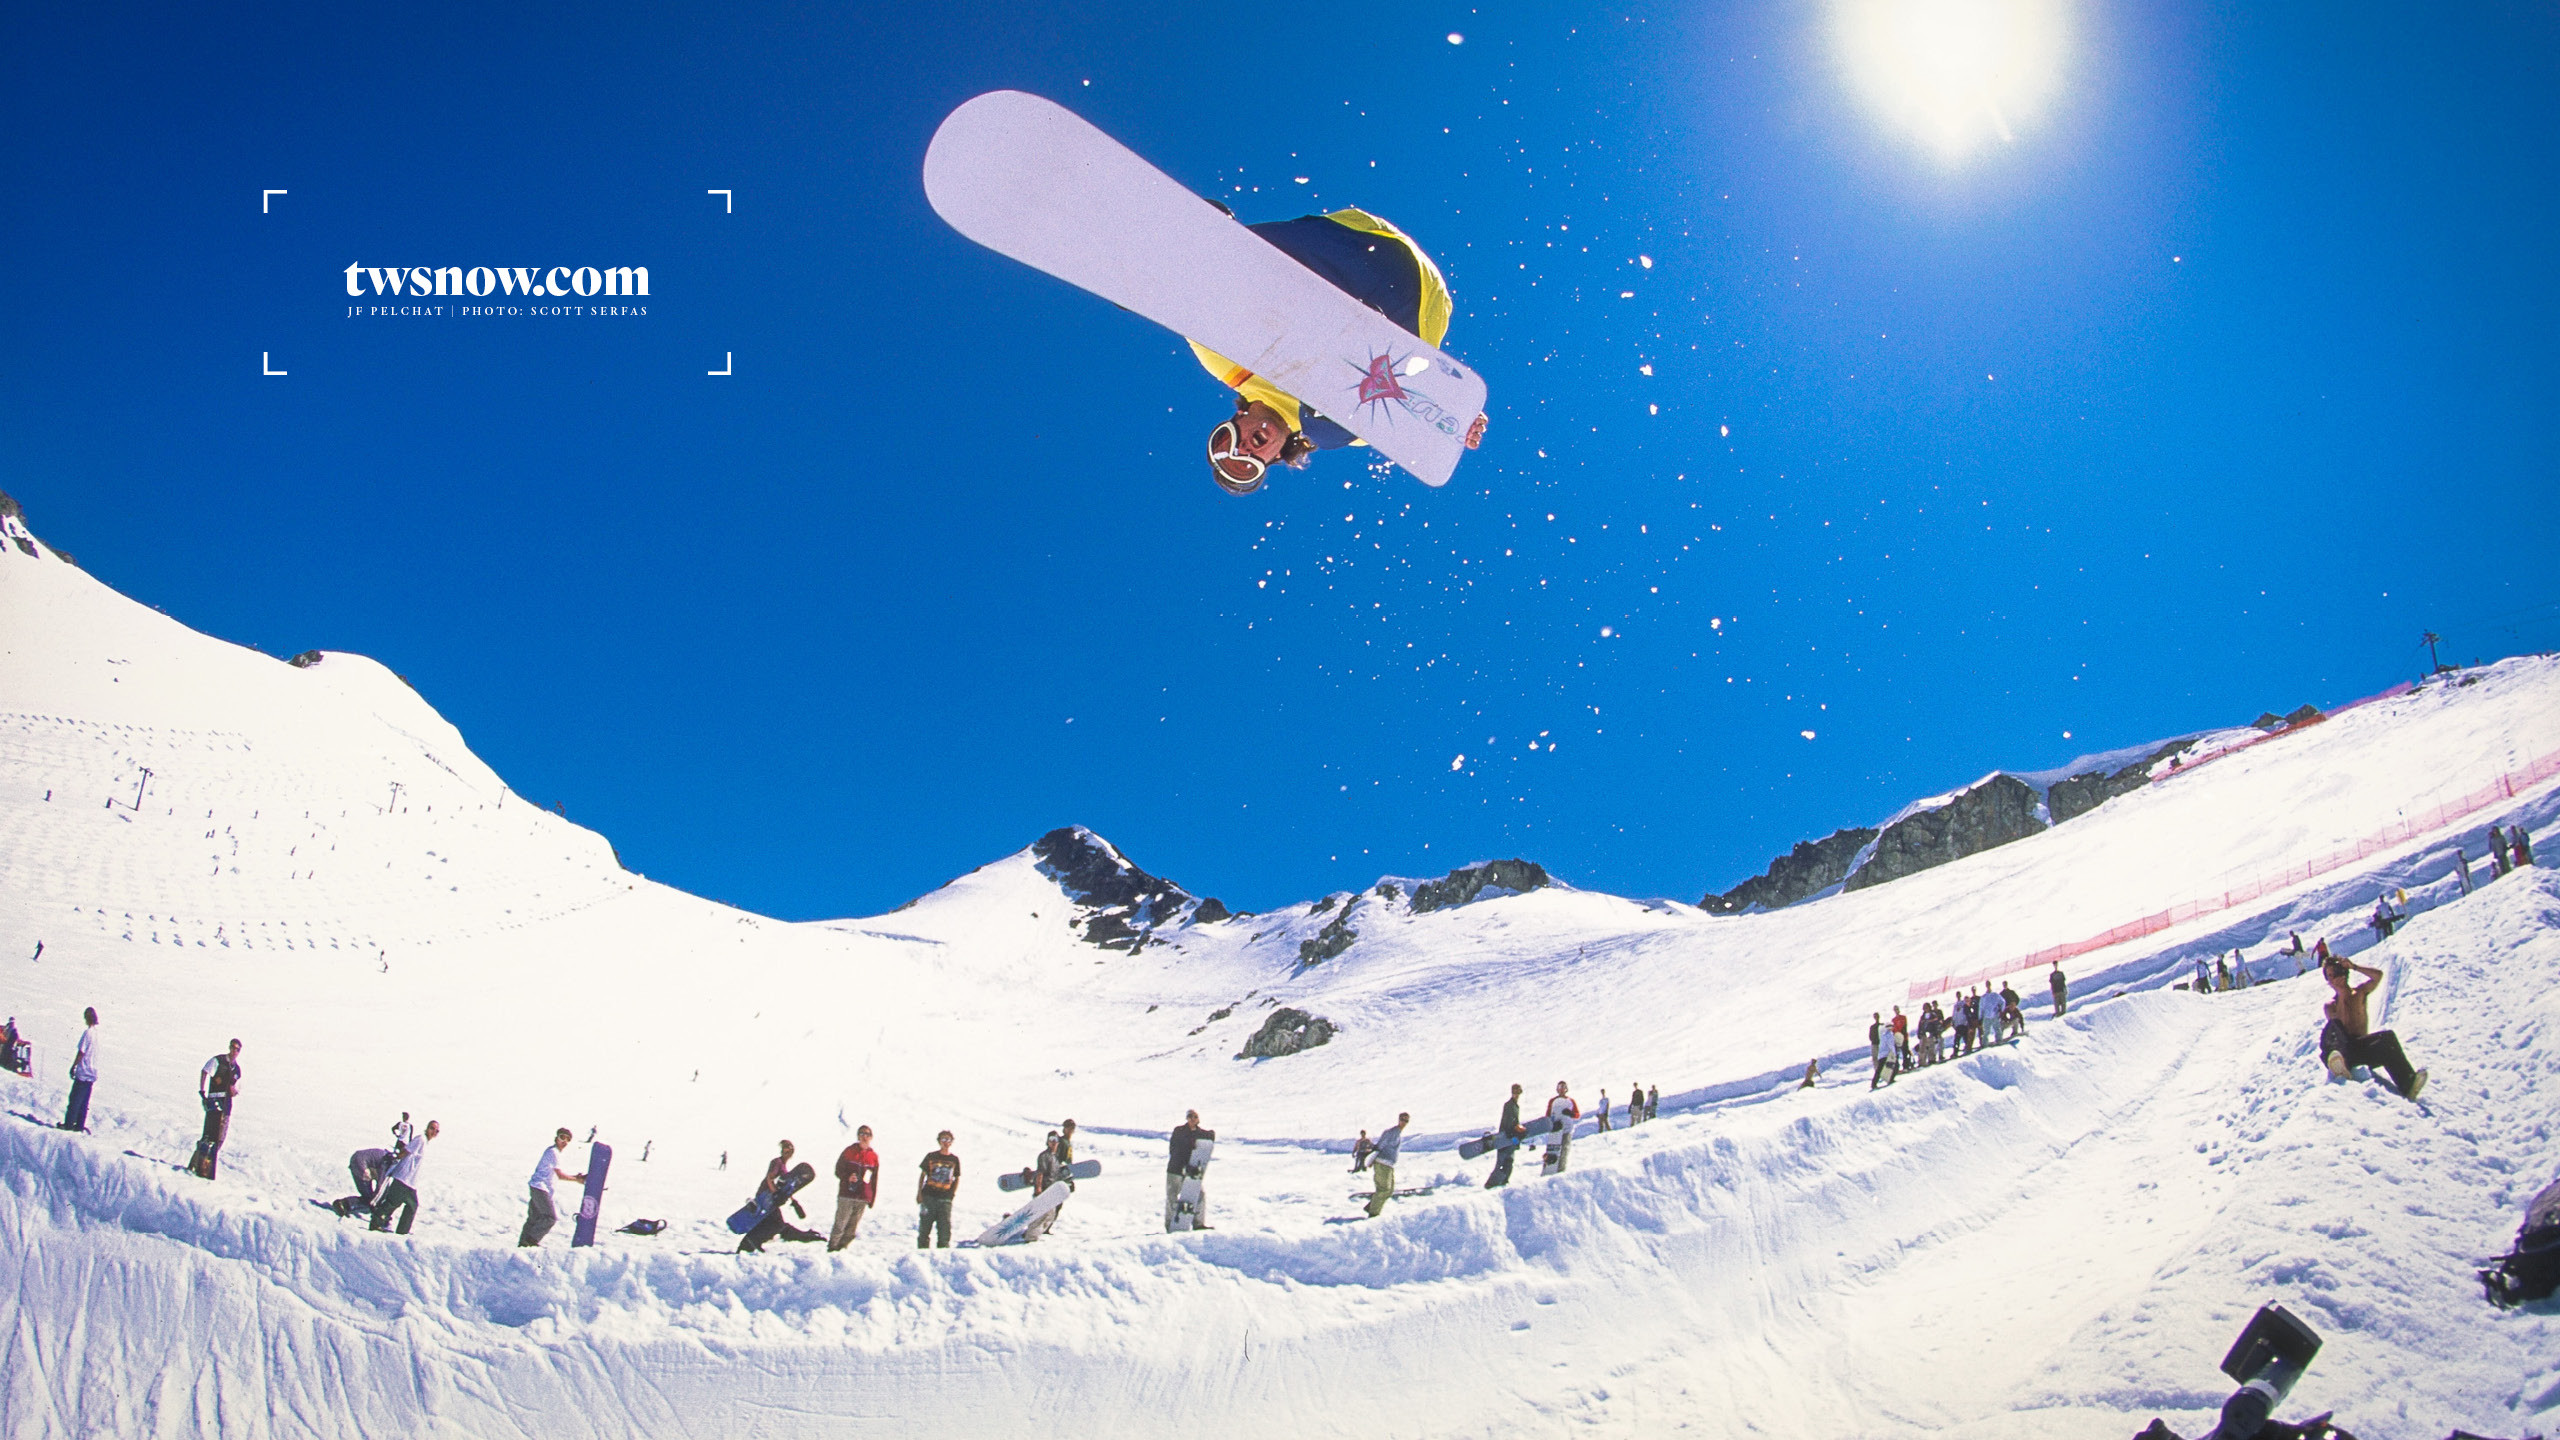 Photo: Scott Serfas Jf Pelchat shredding the public pipe around 96 or 97 up  on Camp Of Champions.